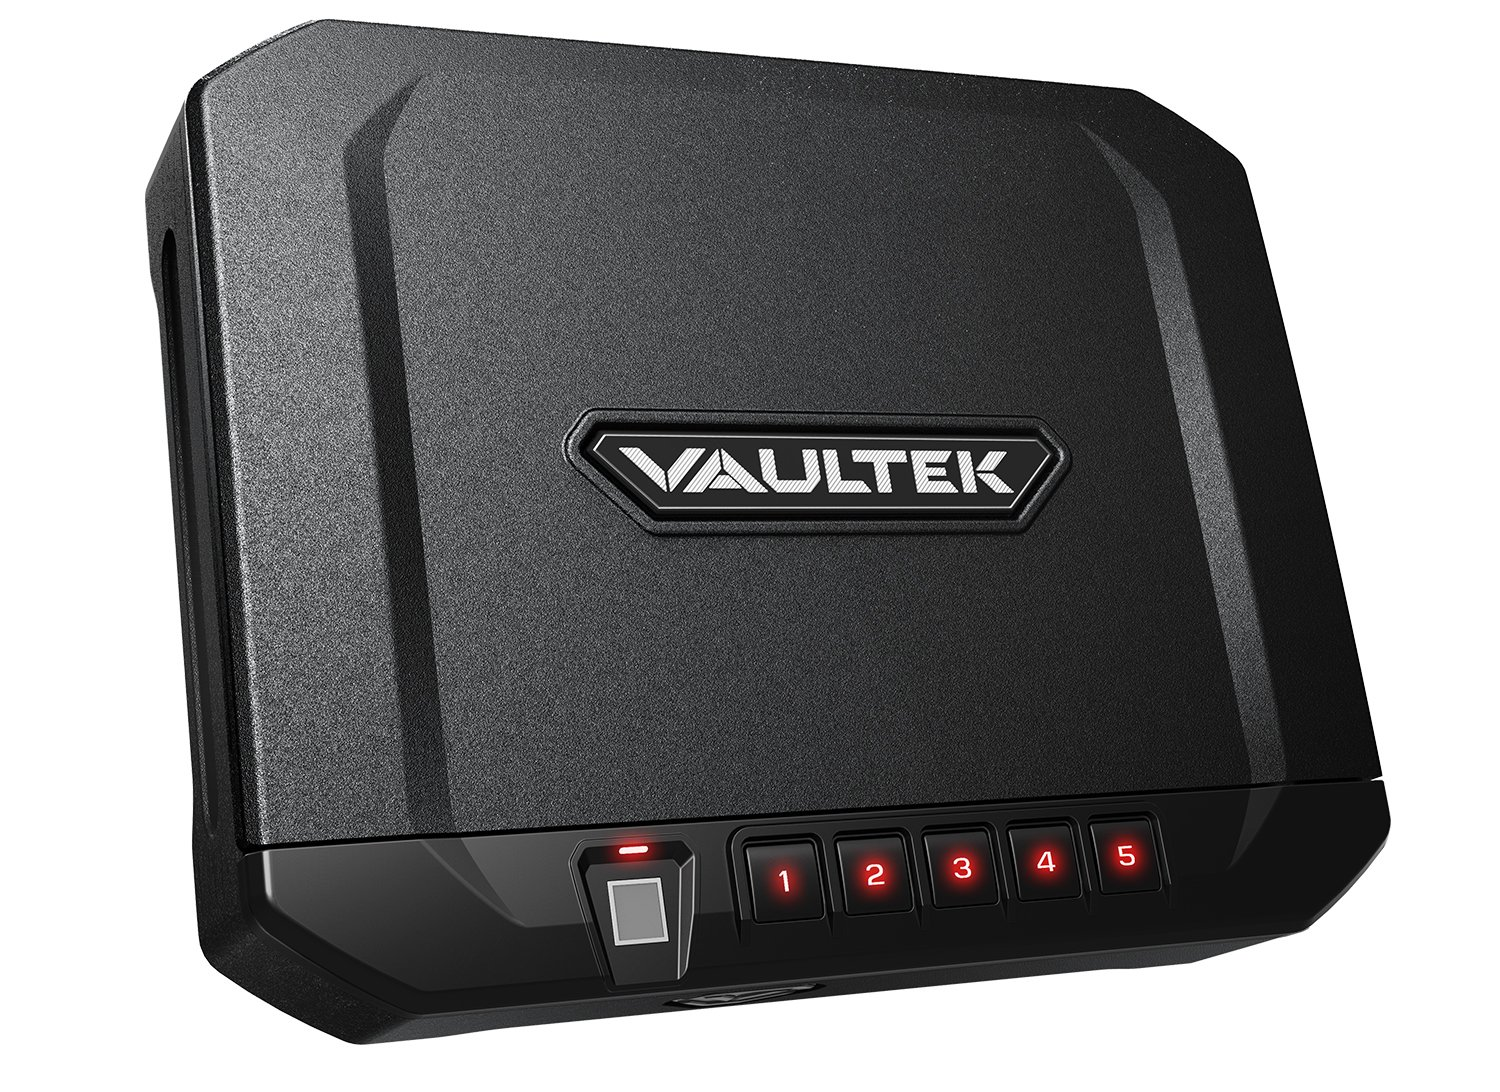 Vaultek VT10i Biometric Handgun Safe